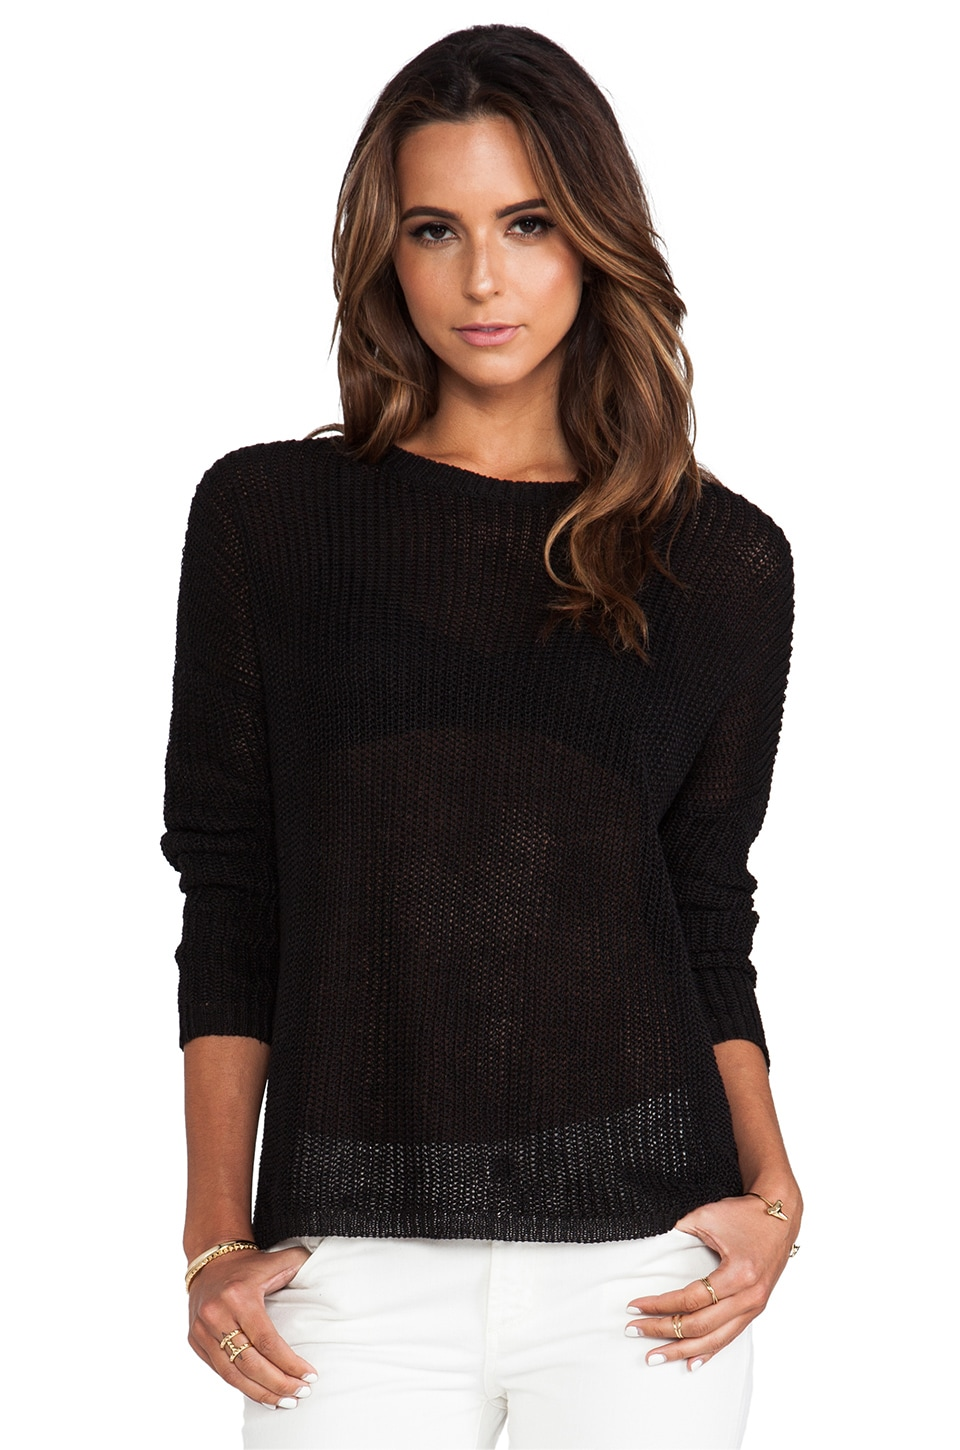 DemyLee Lila Sweater in Black